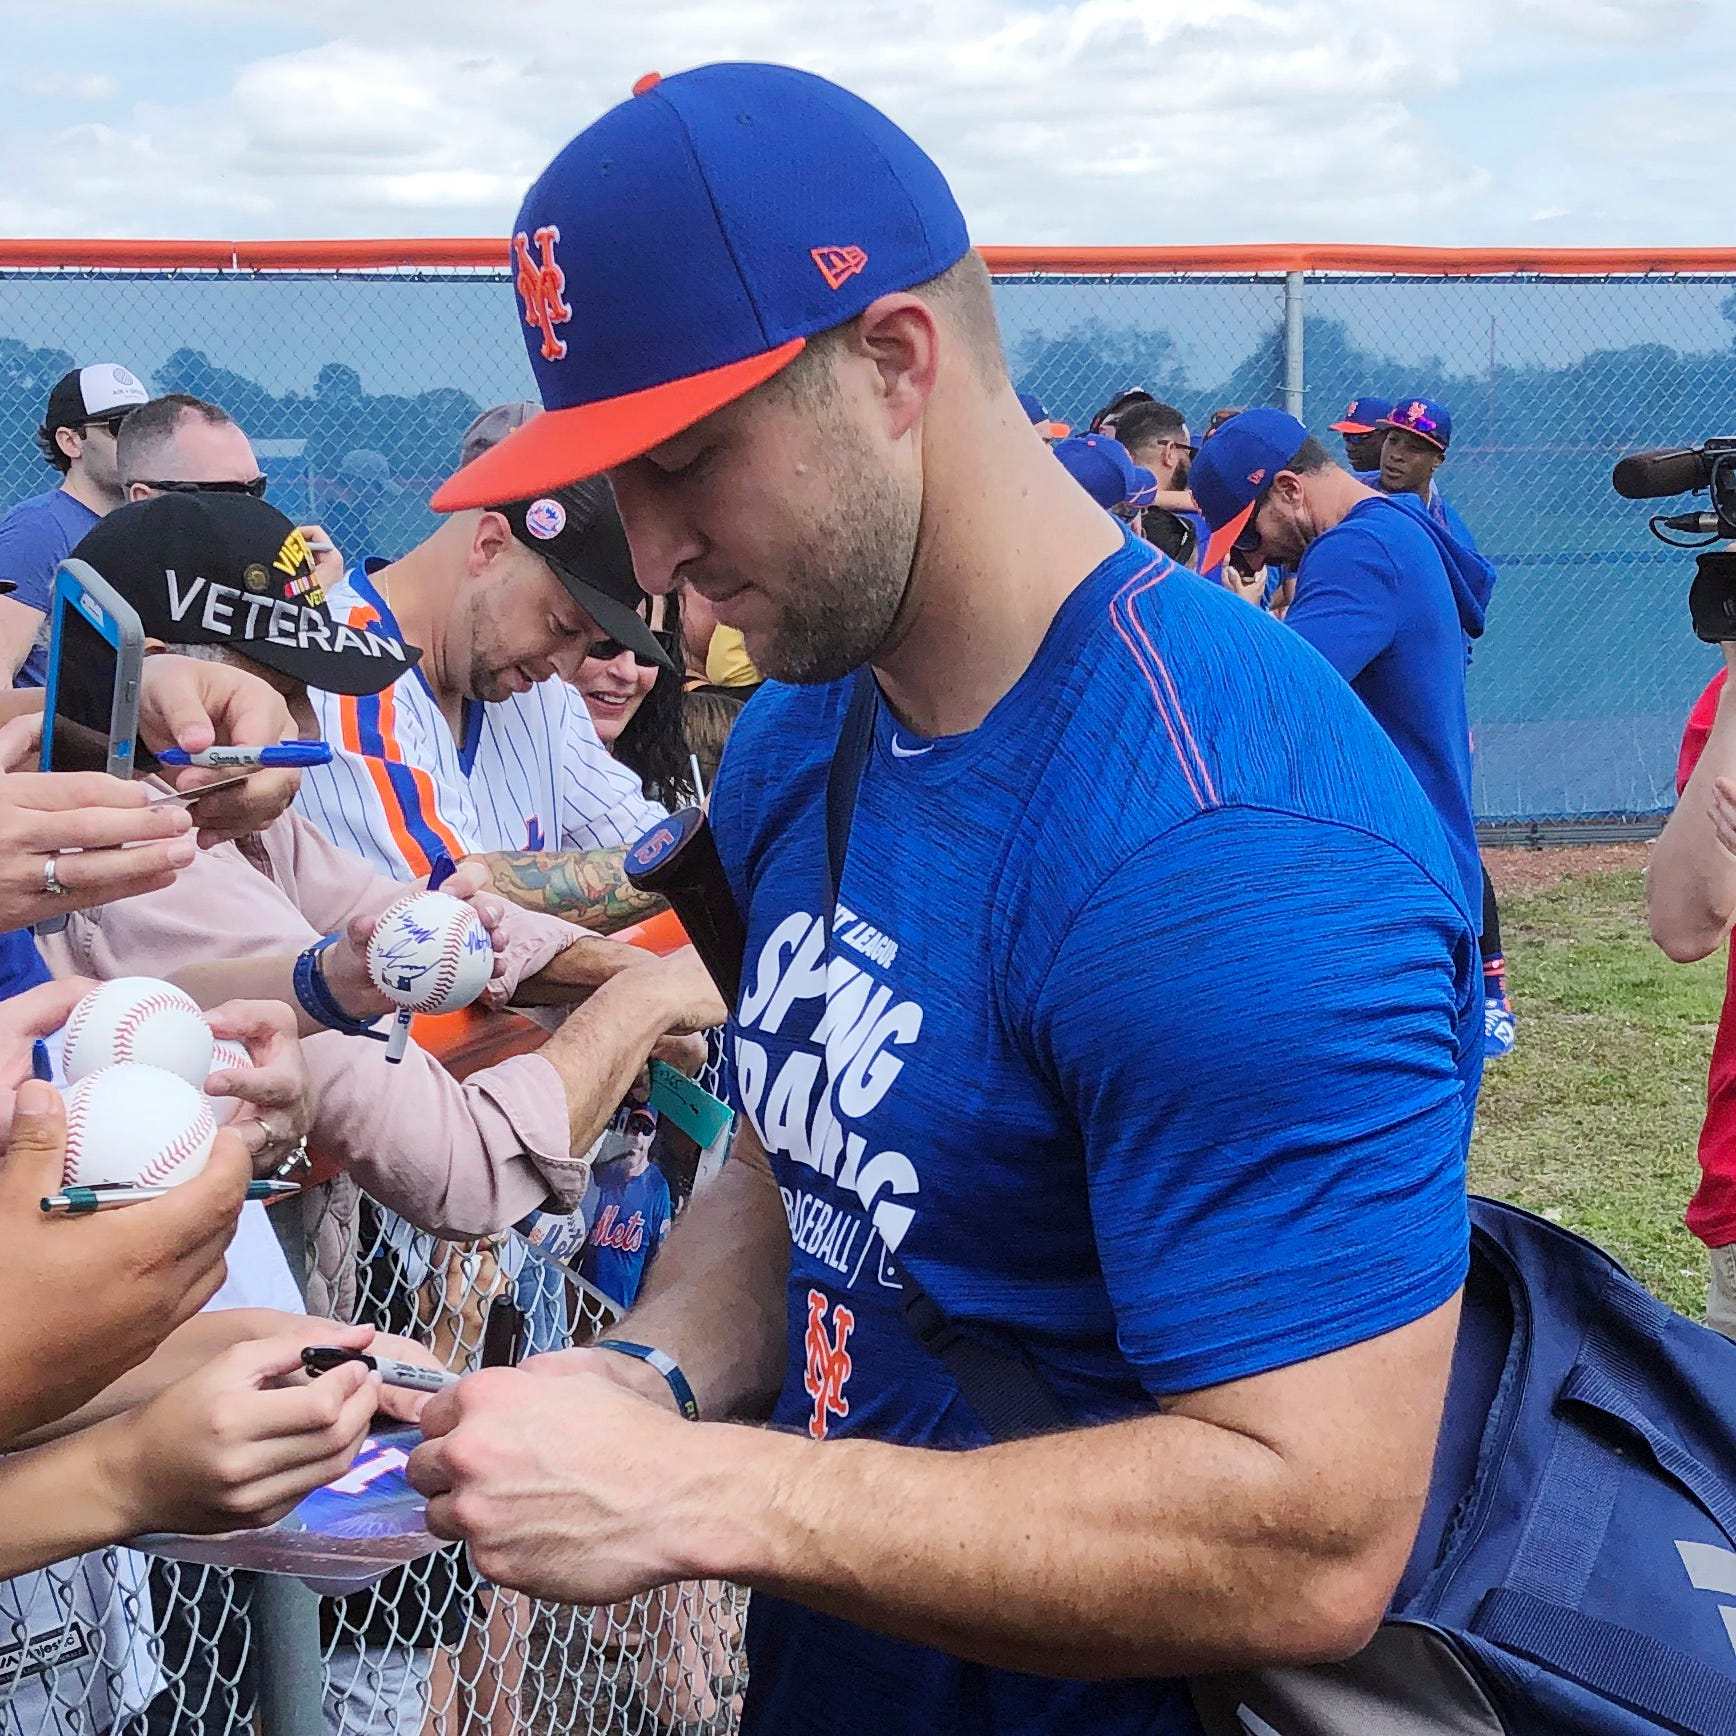 New York Mets outfielder Tim Tebow signs autographs at spring training.